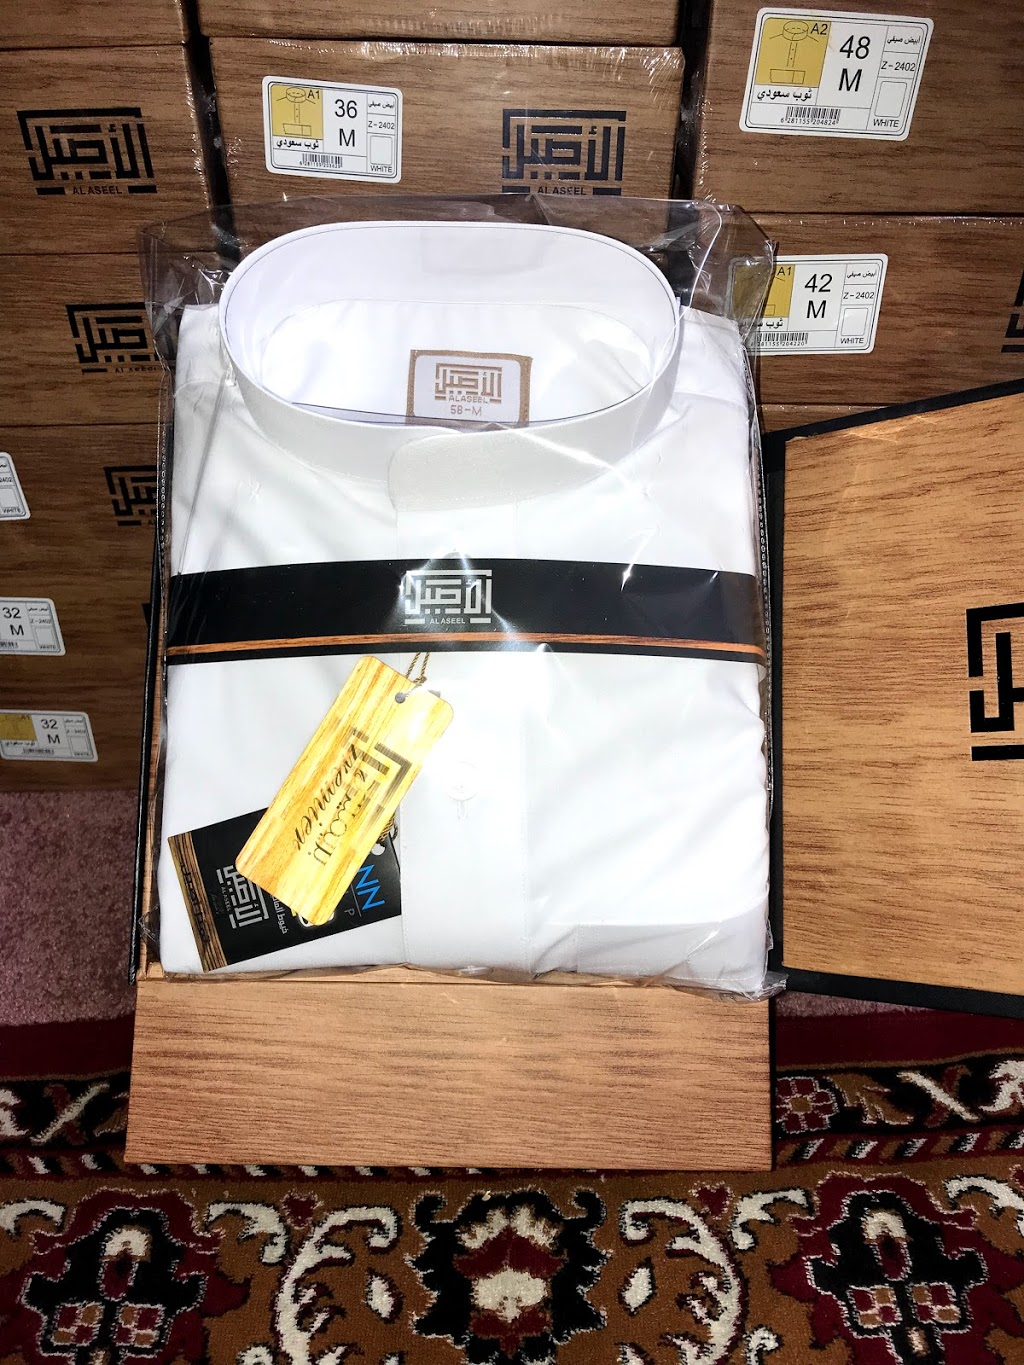 BIN DAWOOD THOBES (ISLAMIC CLOTHING) | store | 46 Rushley Dr, Scarborough, ON M1P 3S5, Canada | 6477406465 OR +1 647-740-6465